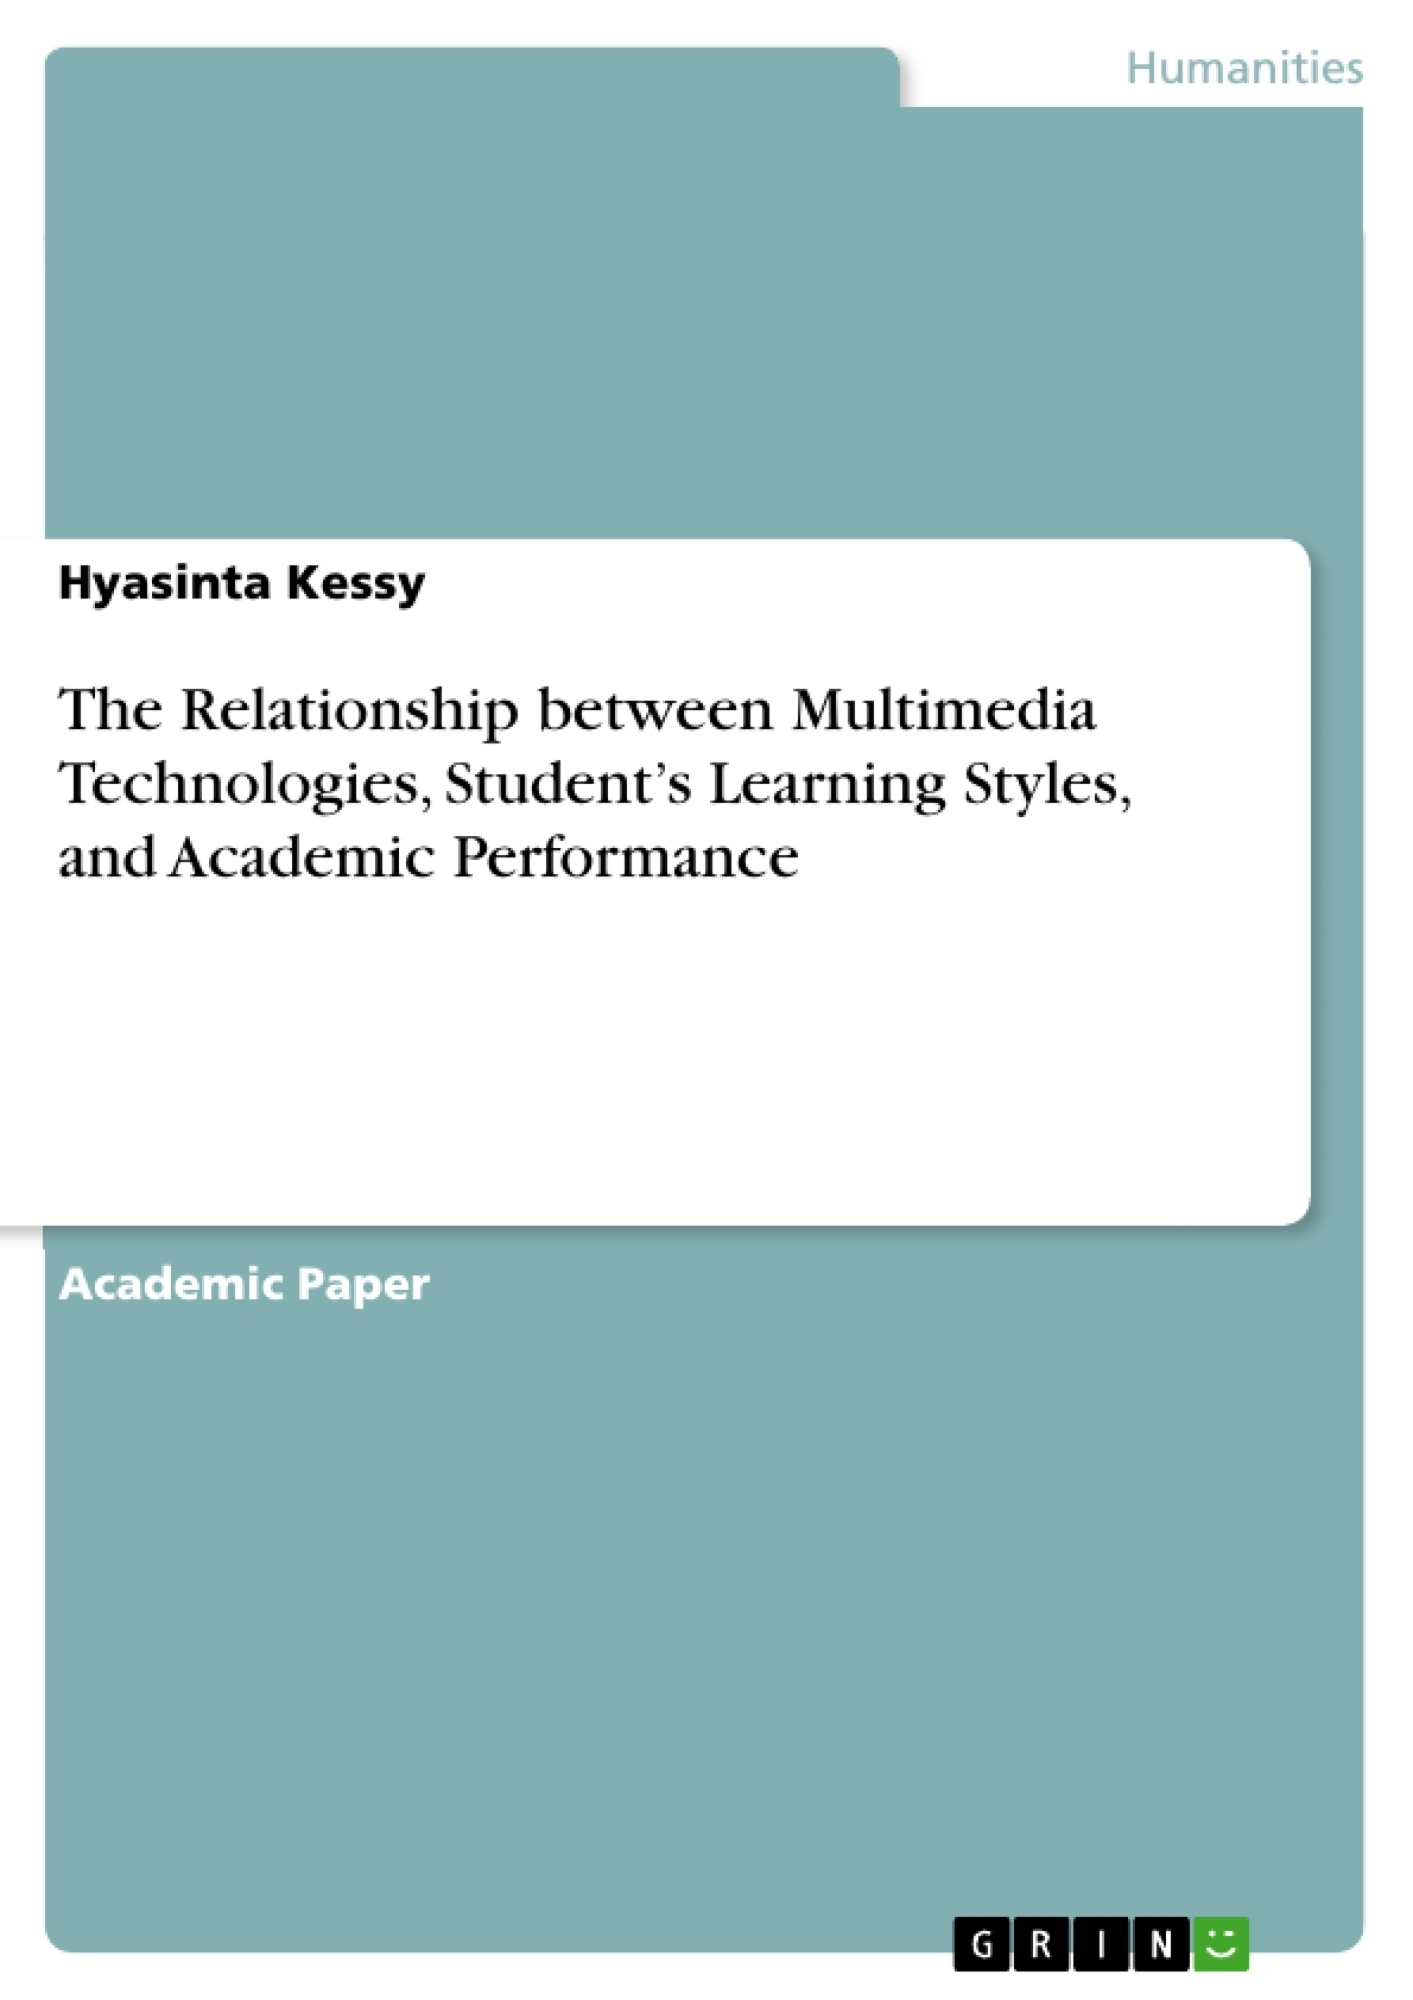 Title: The Relationship between Multimedia Technologies,  Student's Learning Styles, and Academic Performance